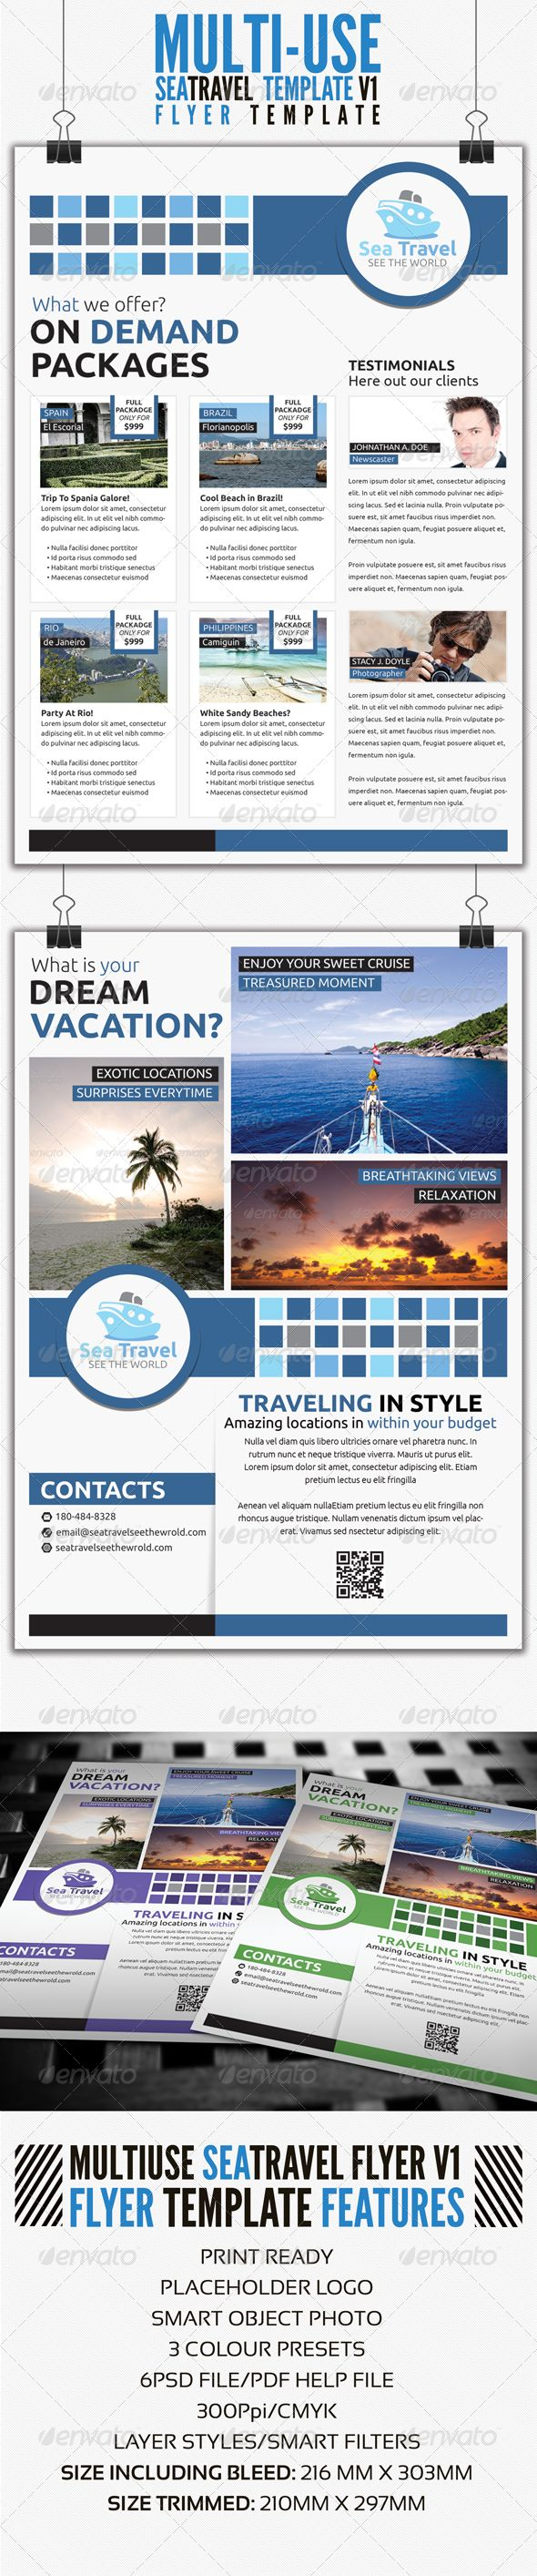 instruction leaflet template - 17 best images about cruise flyer on pinterest cruise